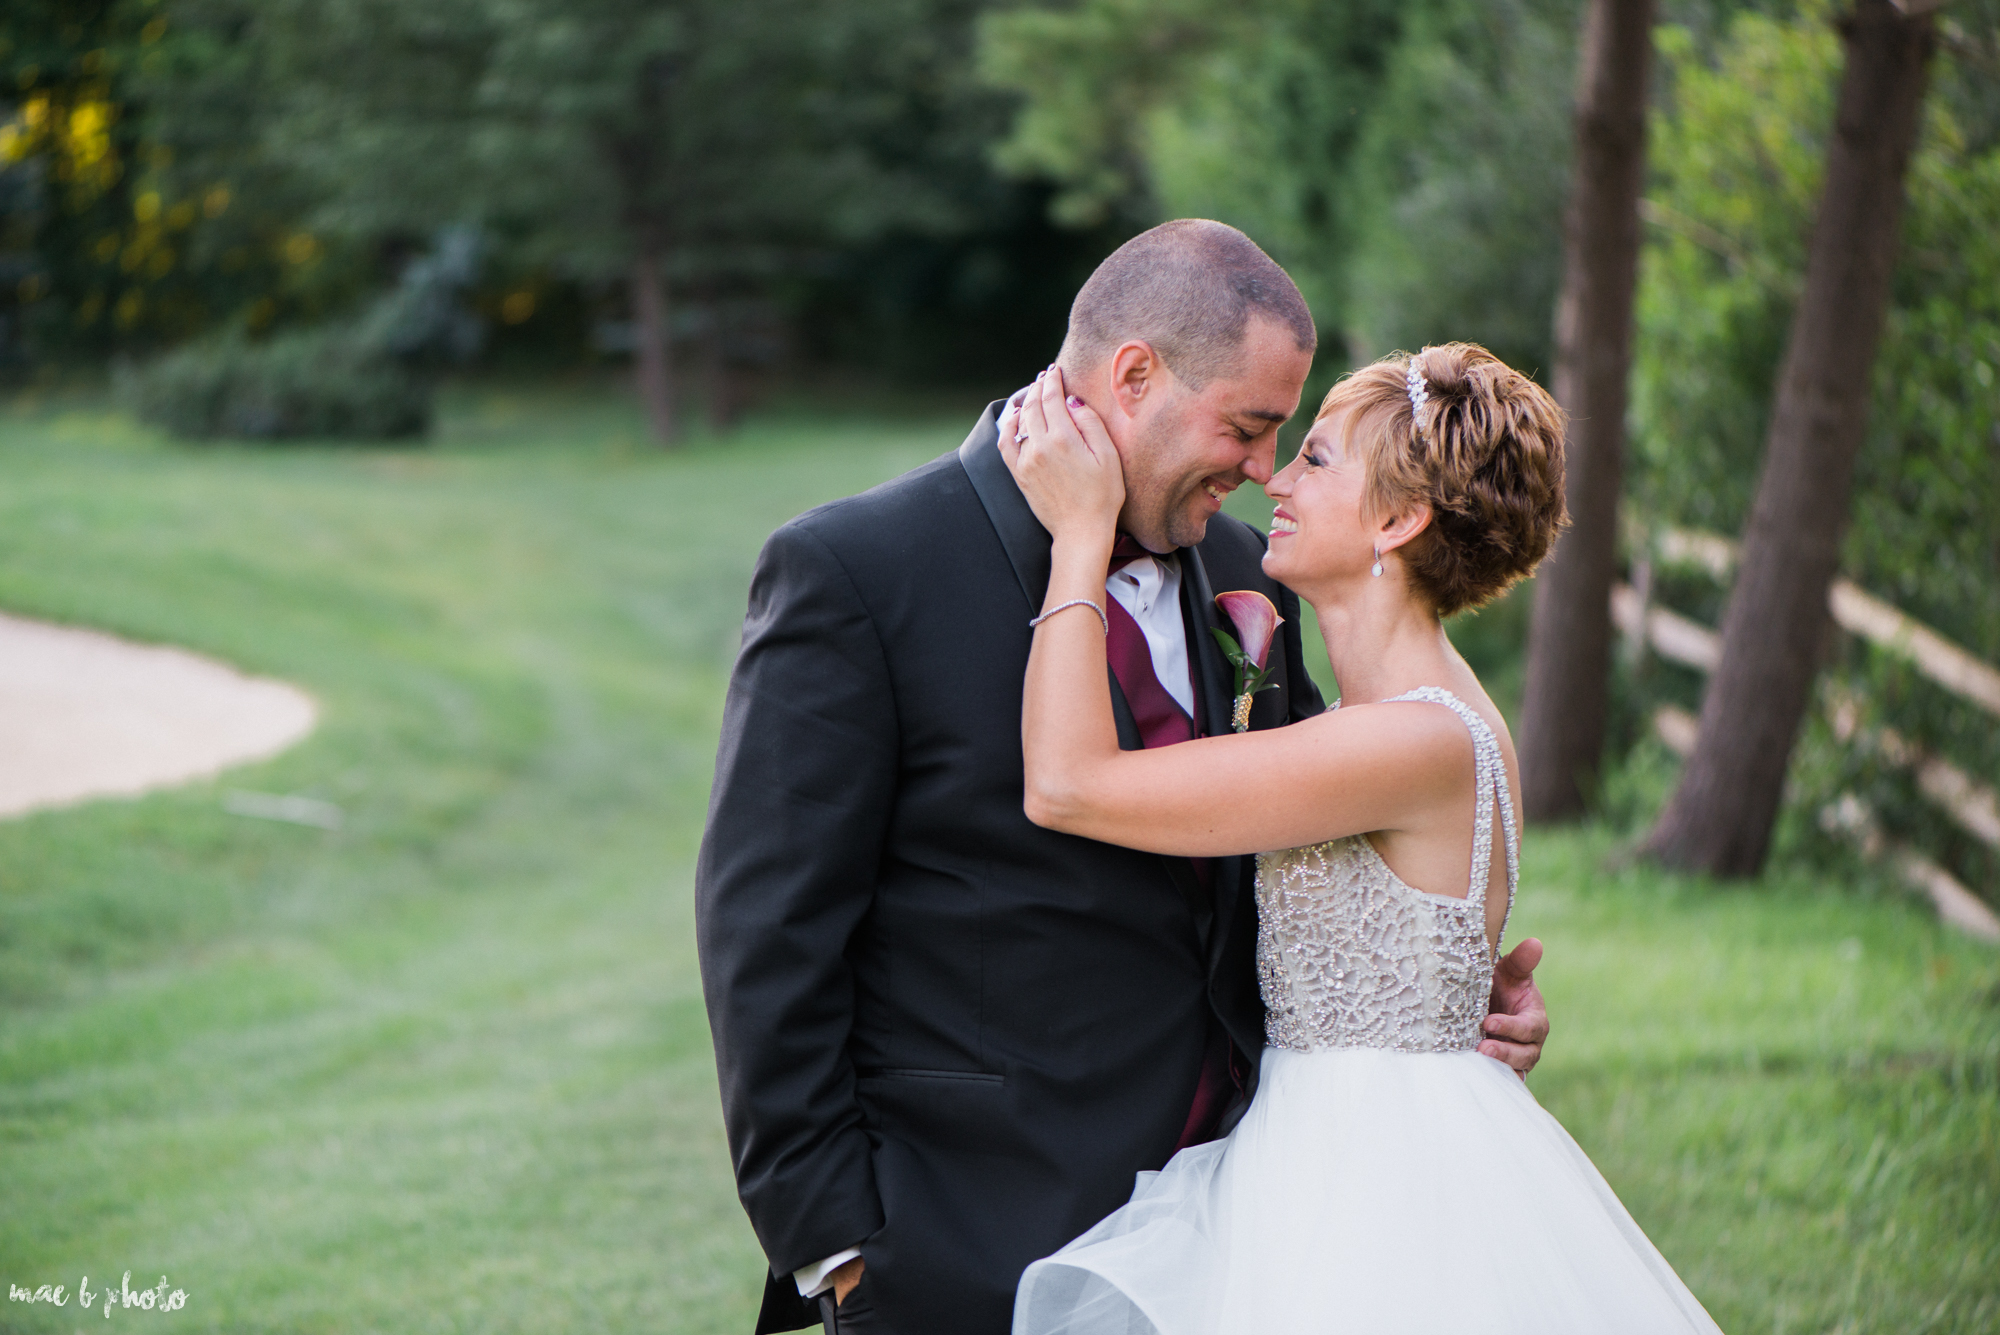 Mary Catherine & Chad's Elegant and Intimate Country Club Wedding at Squaw Creek in Youngstown Ohio by Mae B Photo-78.jpg